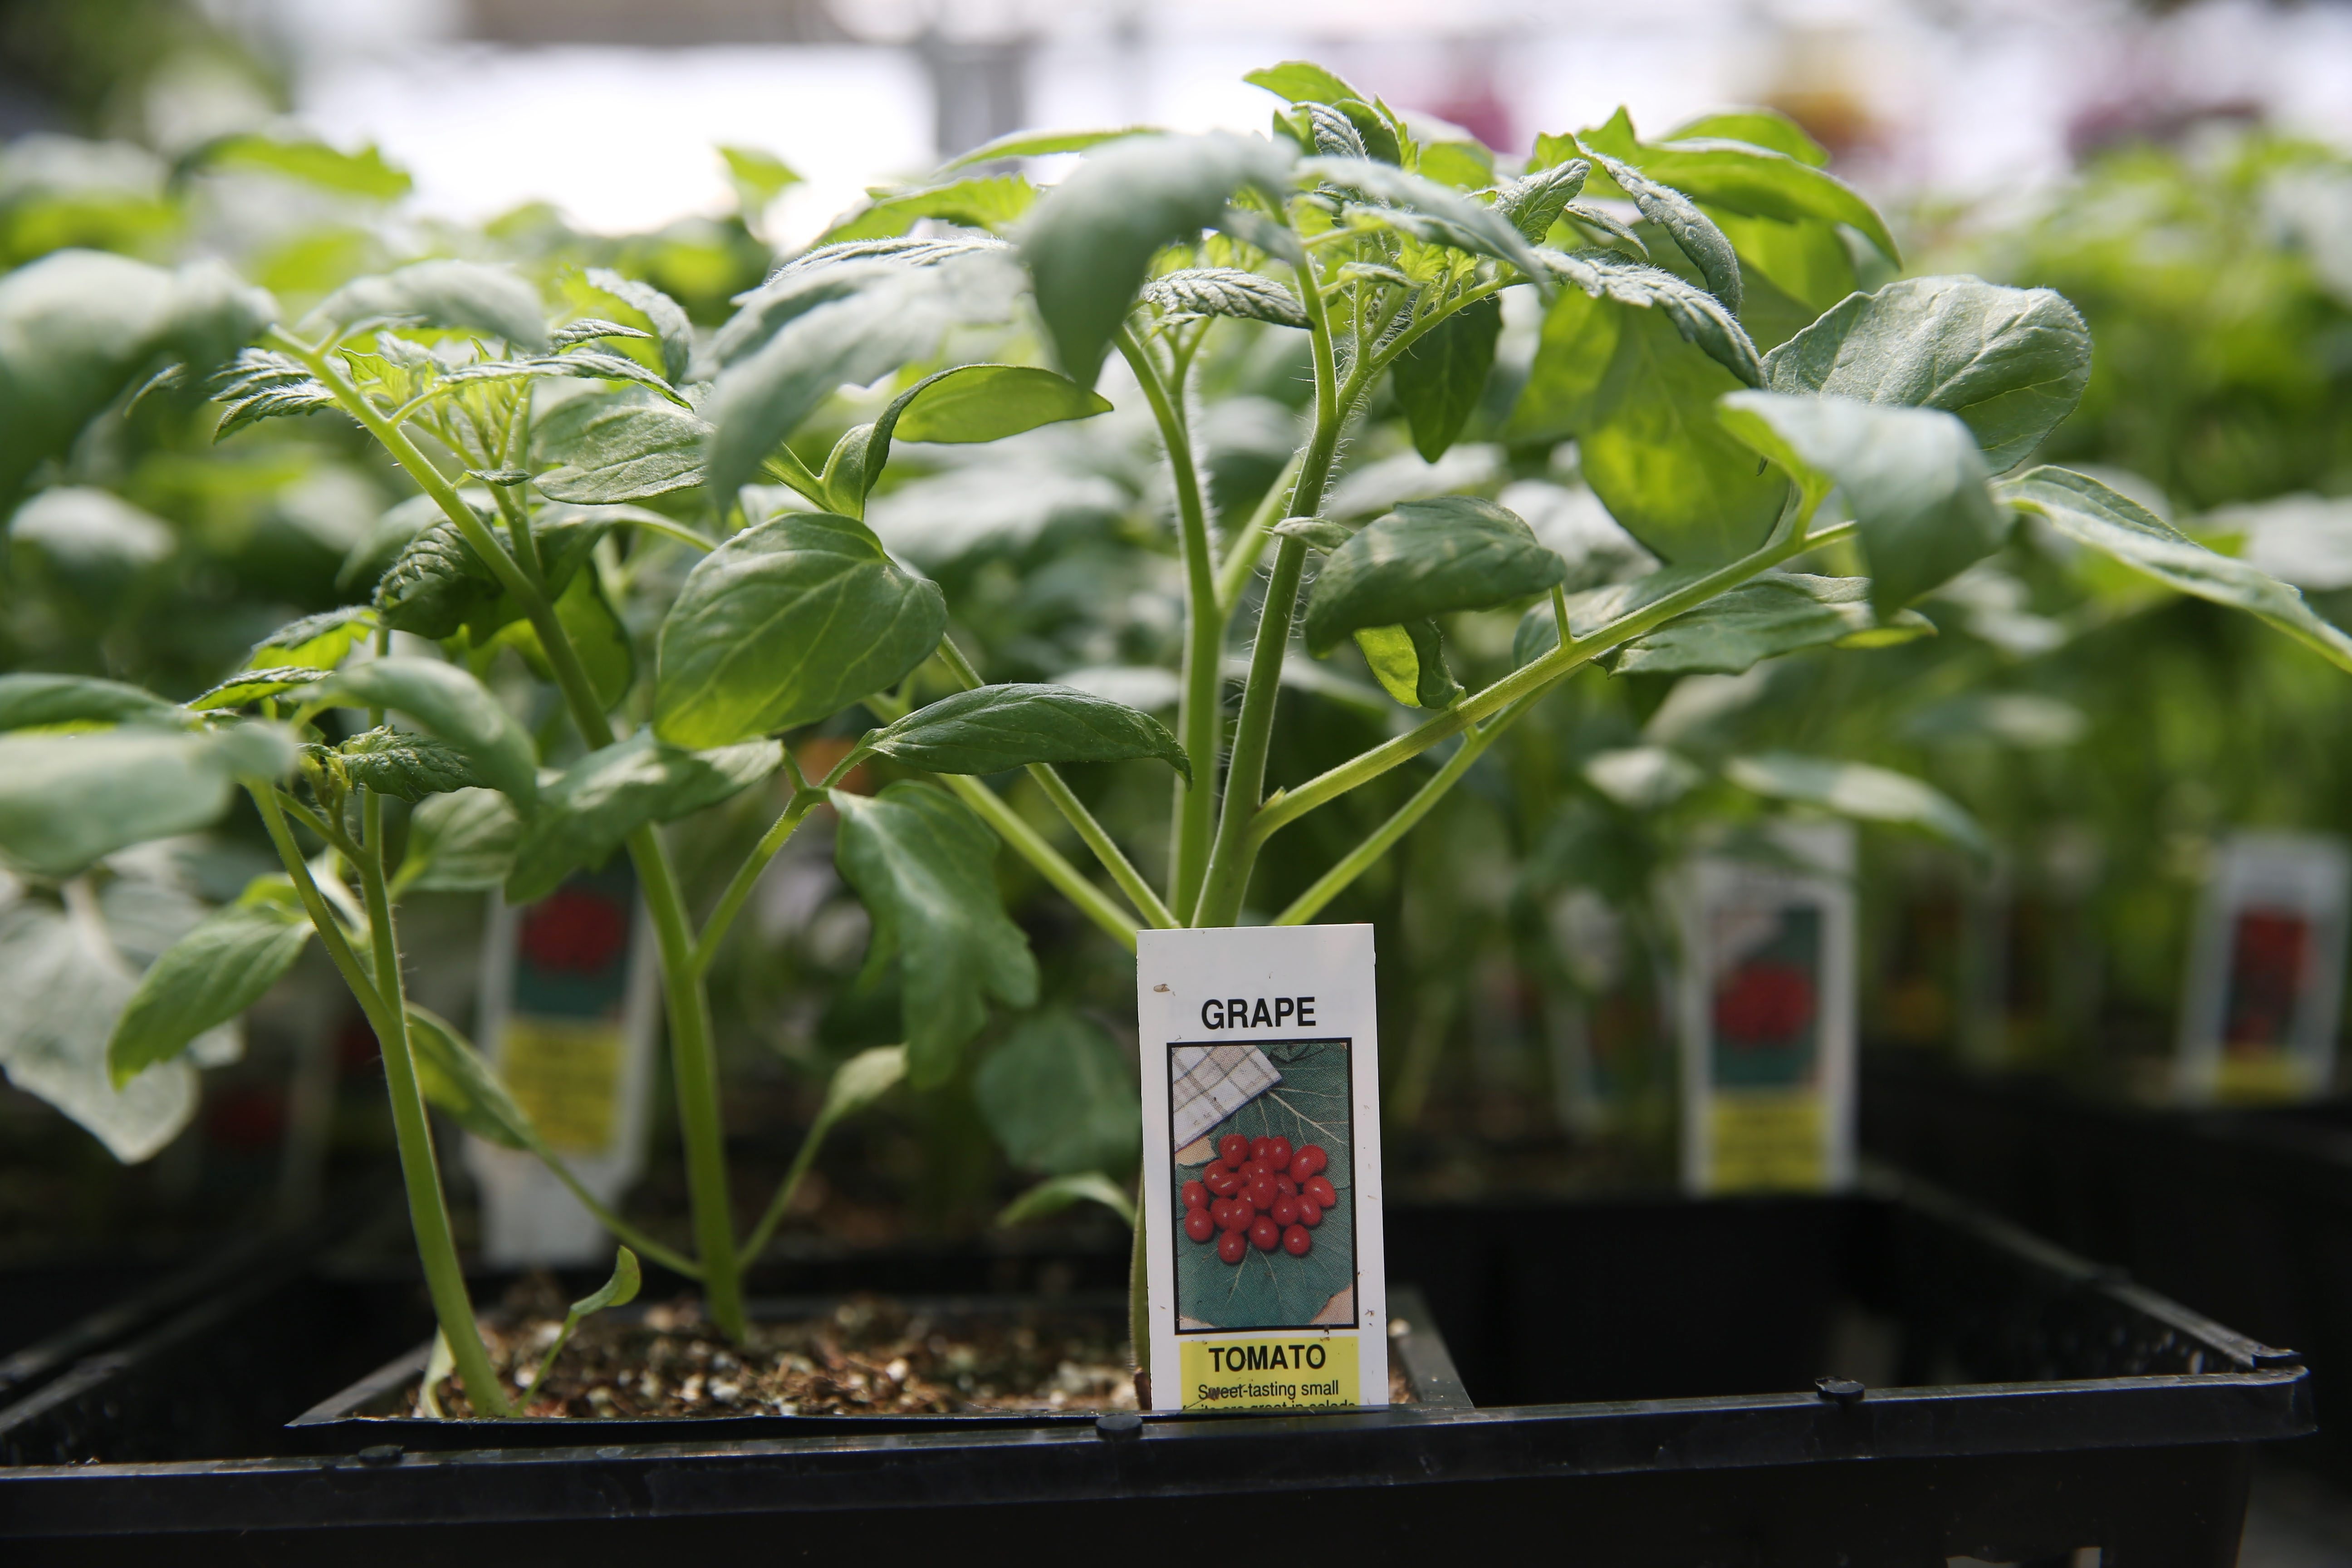 Need to know how to care for your plants? Just follow the directions on the plant tag, says master gardener Carol Sobczak.